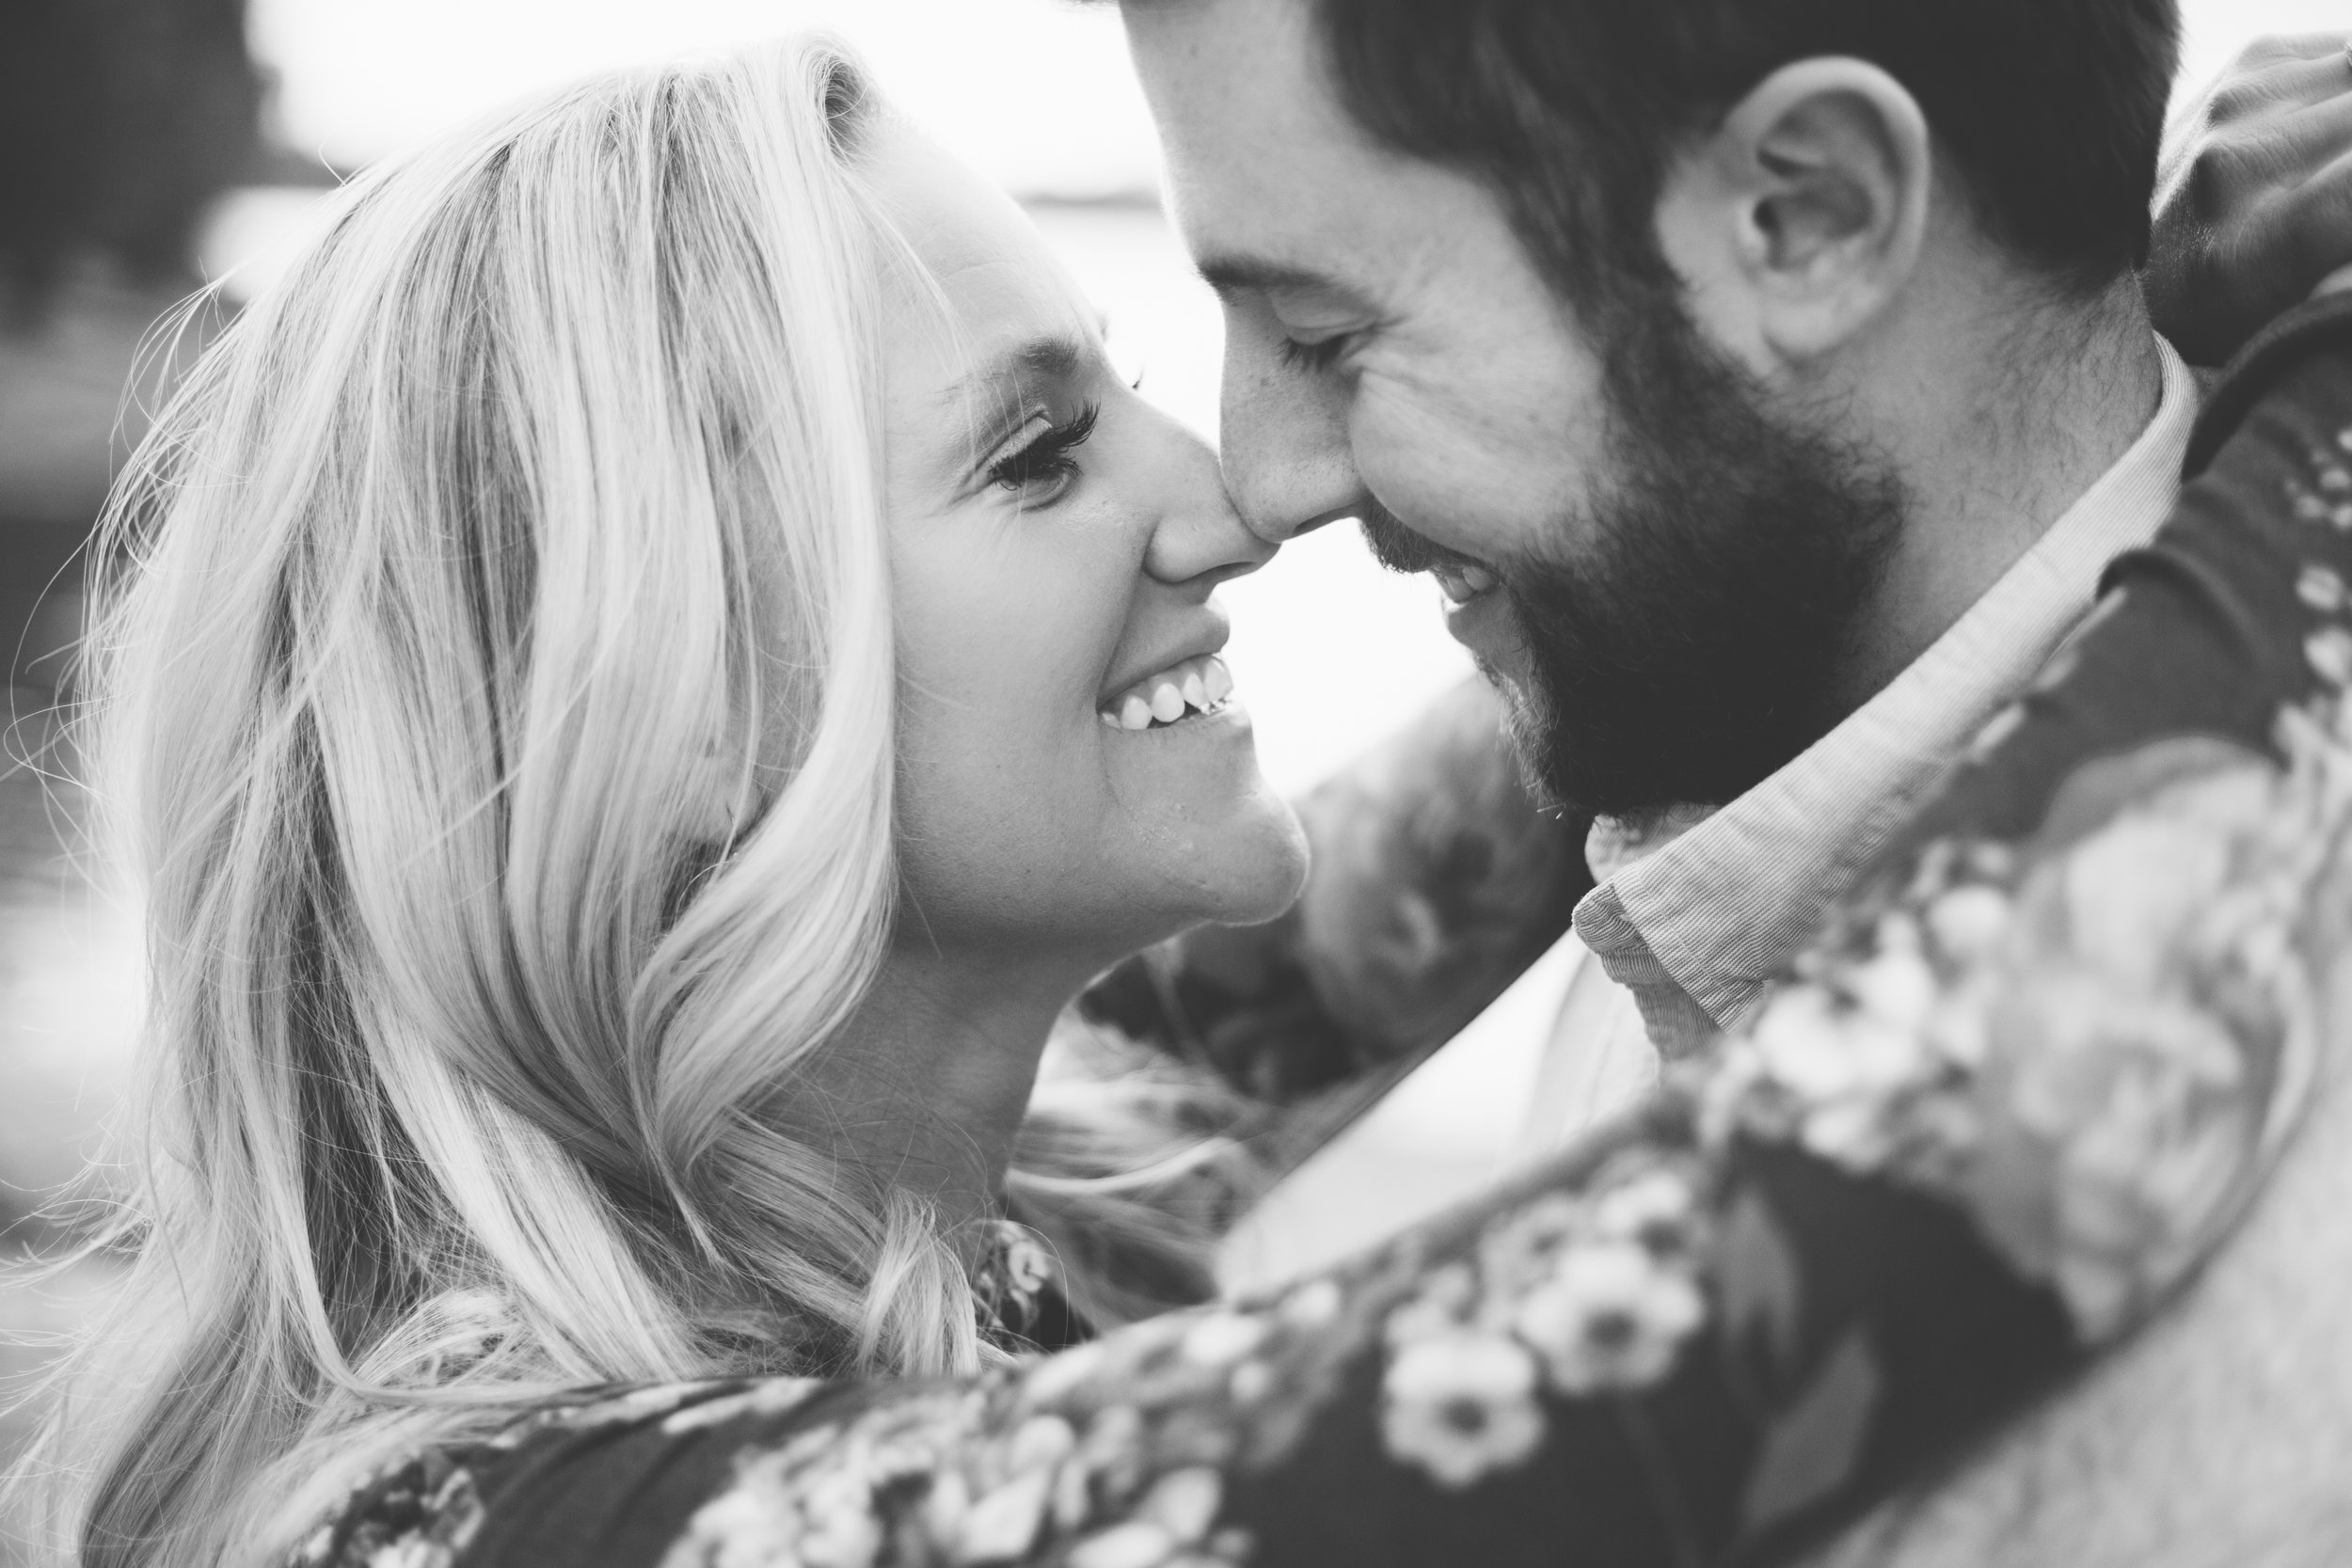 poses, couples, inspiration, fall, fun, love, passion, intimate, engaged, married, creative, romantic, outdoors, light and airy, natural light, inspiration, beautiful, sunset, love, Knoxville, Tennessee, vibrant, colorful, black and white